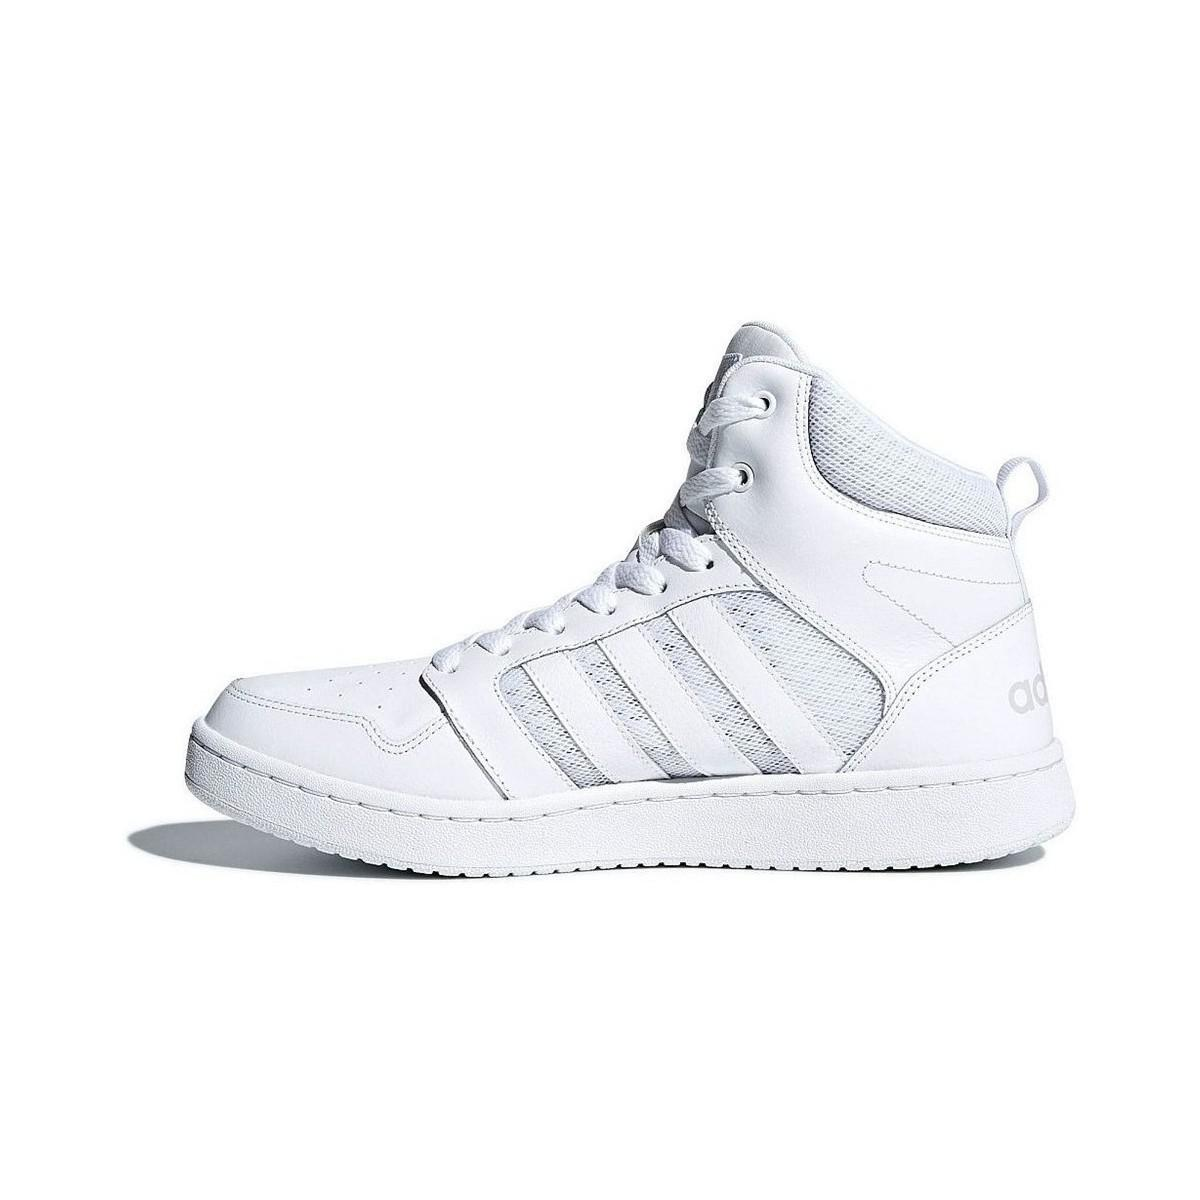 adidas Neo Men's CF Super Hoops Mid Basketball Shoe White